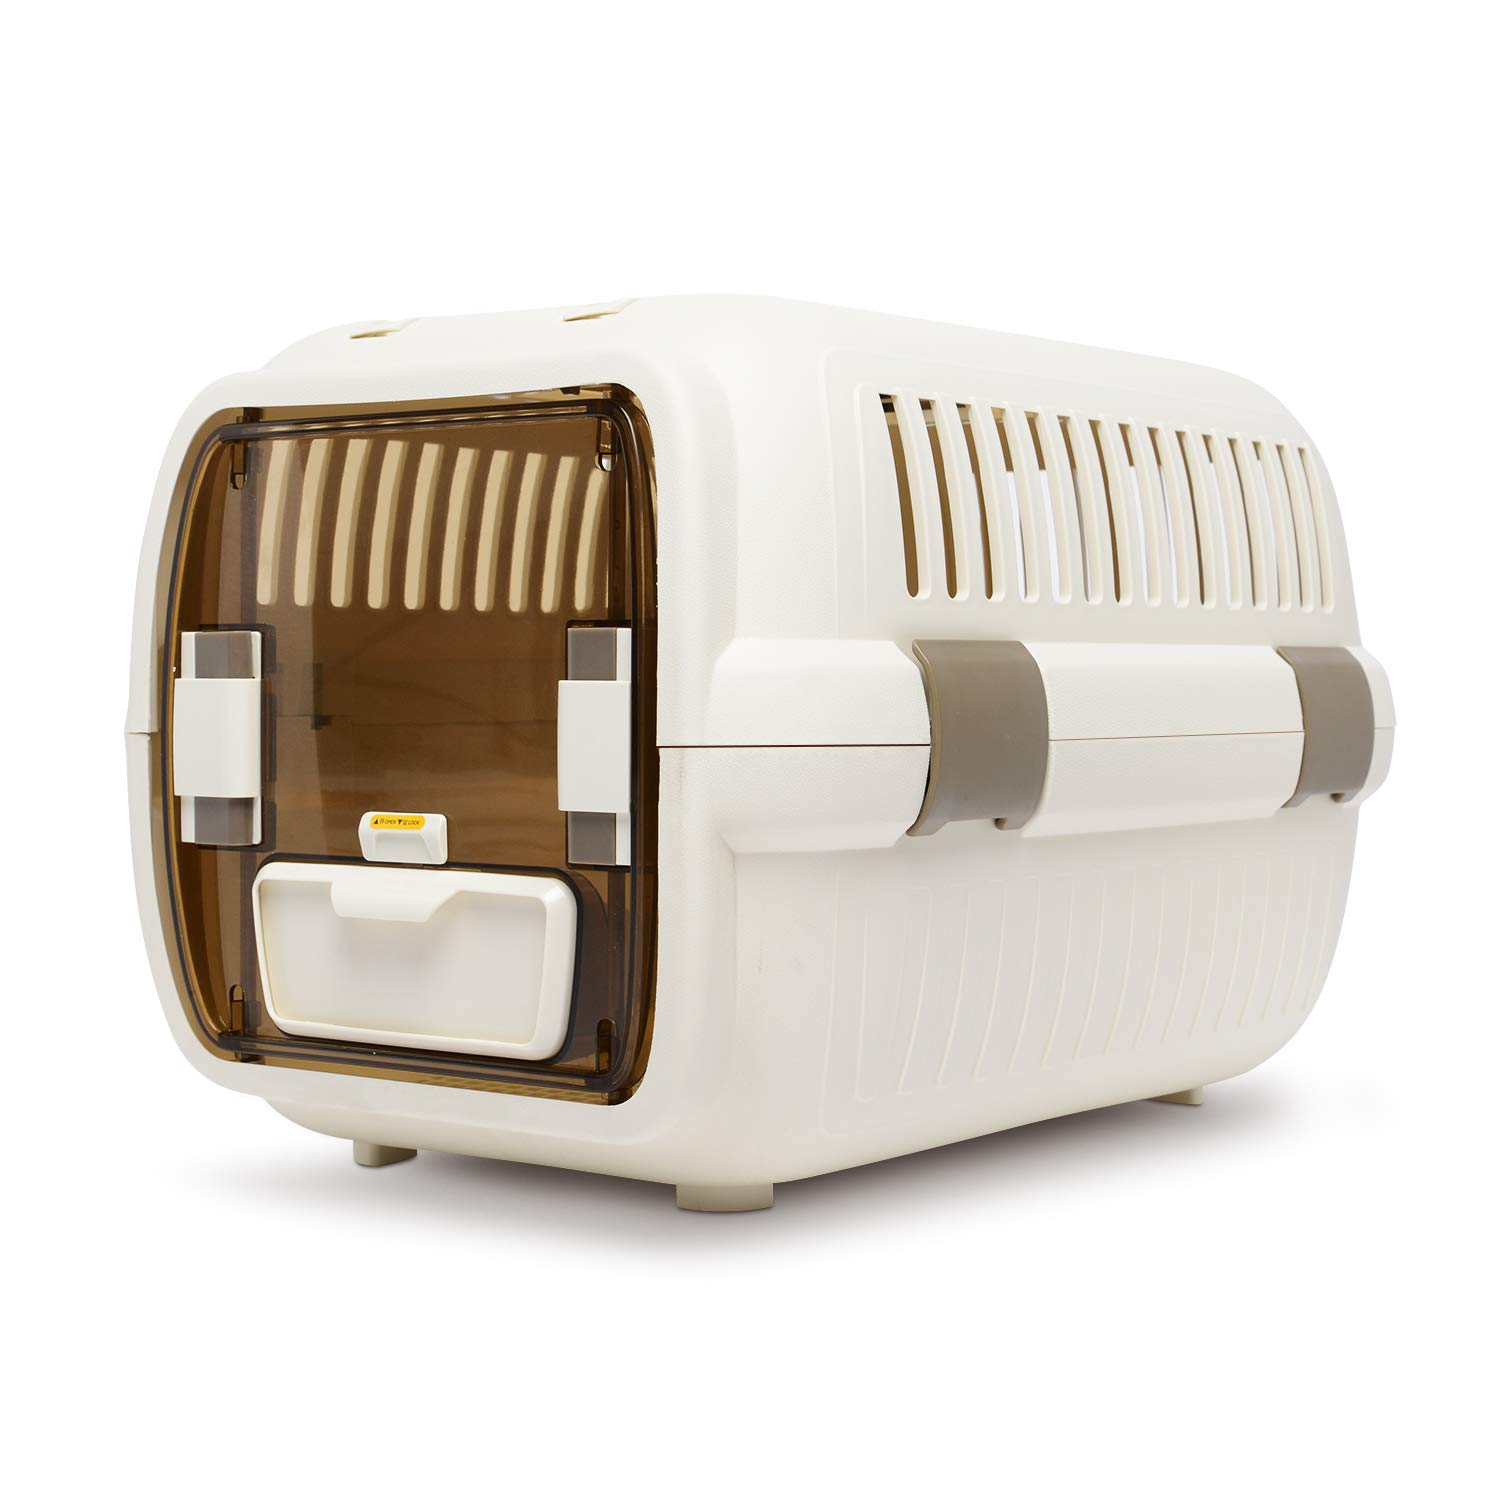 LAZY BUDDY Cat Carrier, Cat Travel Kennel with Food and Water Bowl for Cats, Dogs, and Other Pets. (Large)